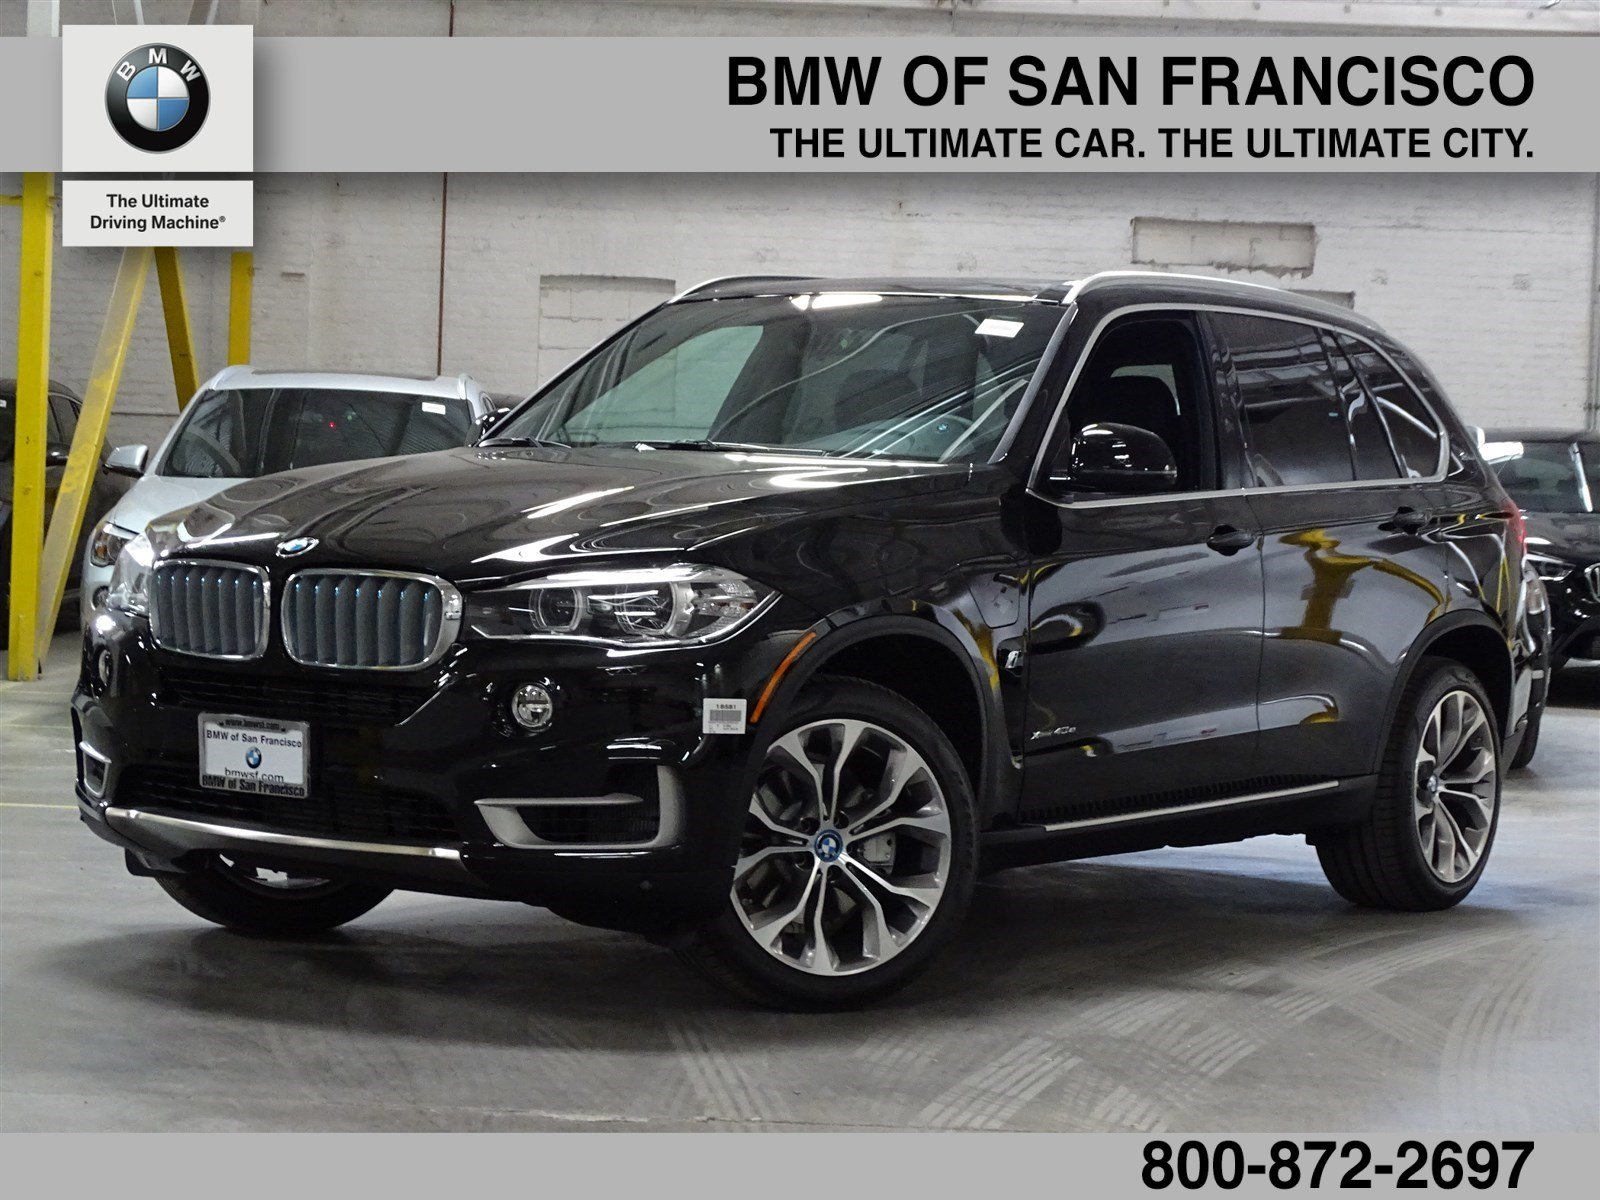 new 2018 bmw x5 xdrive40e iperformance sport utility in san francisco 18581 bmw of san francisco. Black Bedroom Furniture Sets. Home Design Ideas